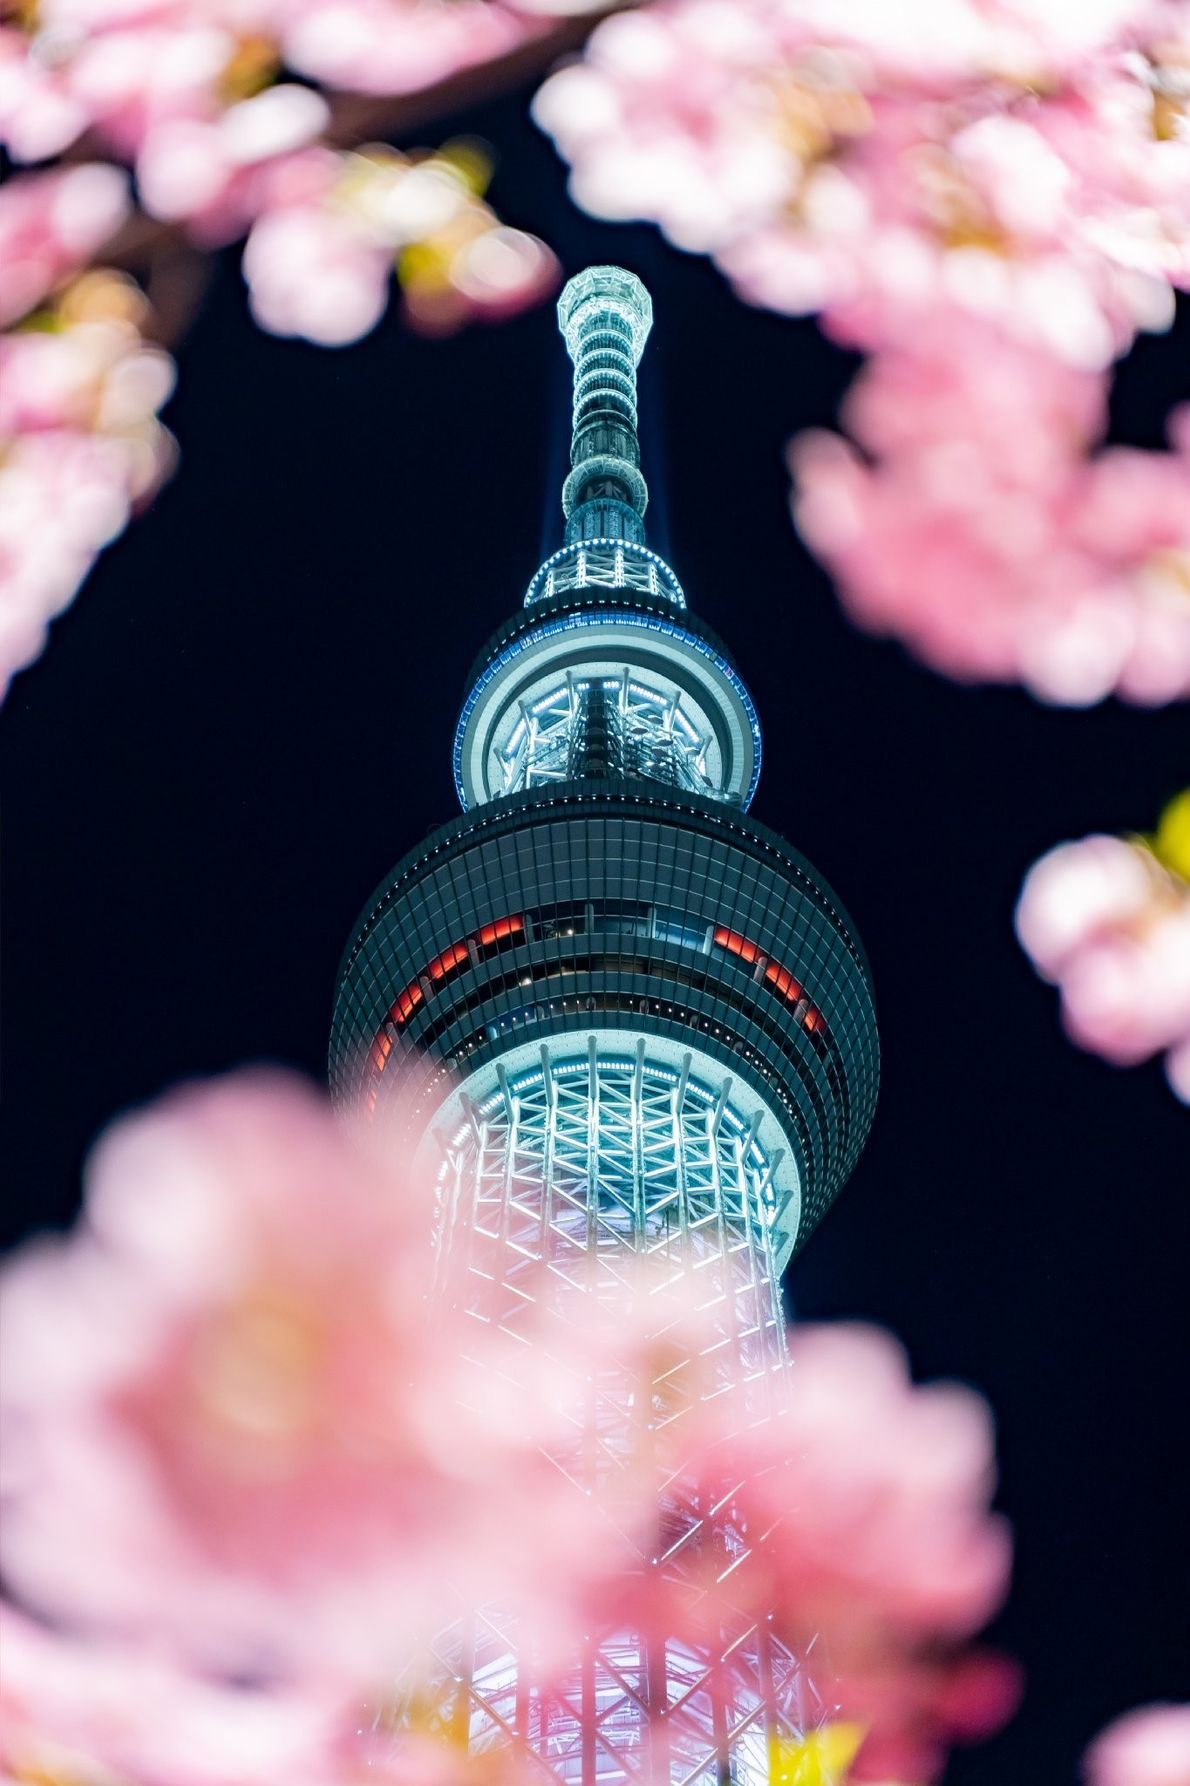 Your Shot photographer S. Tanaka composed the Tokyo Skytree, the world's tallest tower at 634 meters, ...